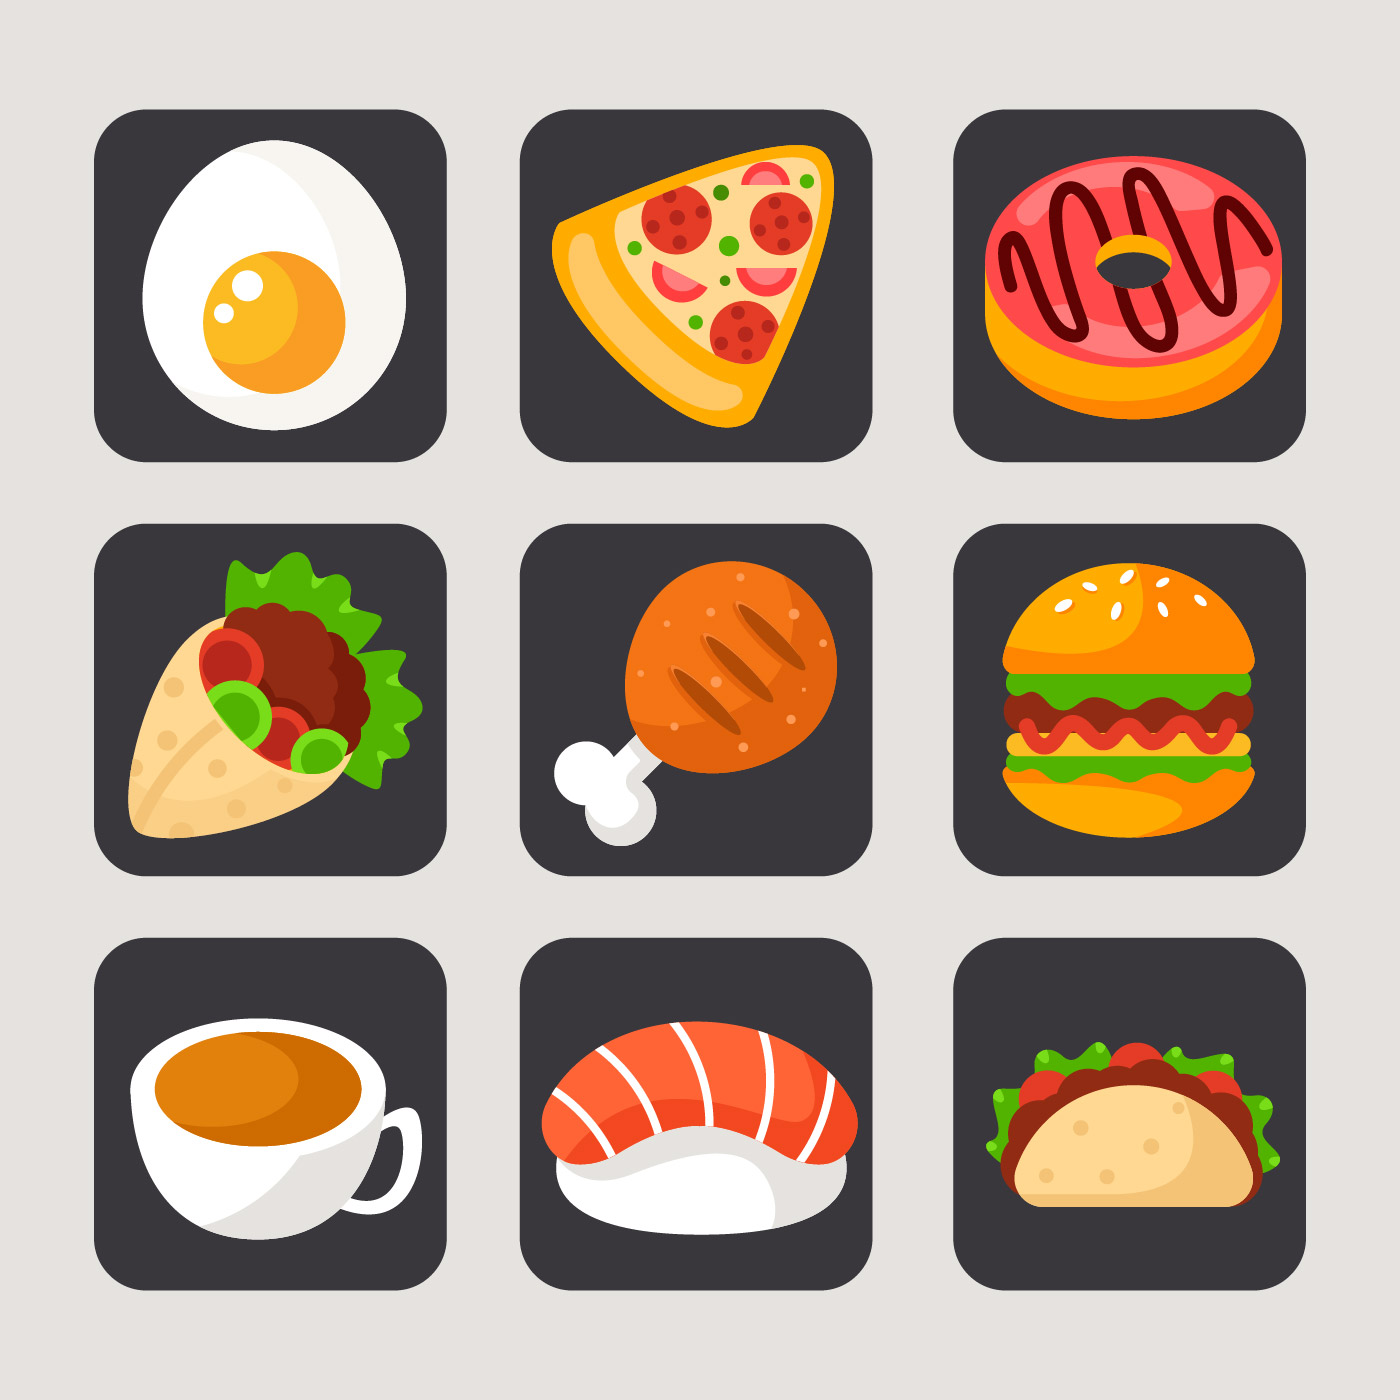 food application icons download free vector art stock graphics images. Black Bedroom Furniture Sets. Home Design Ideas